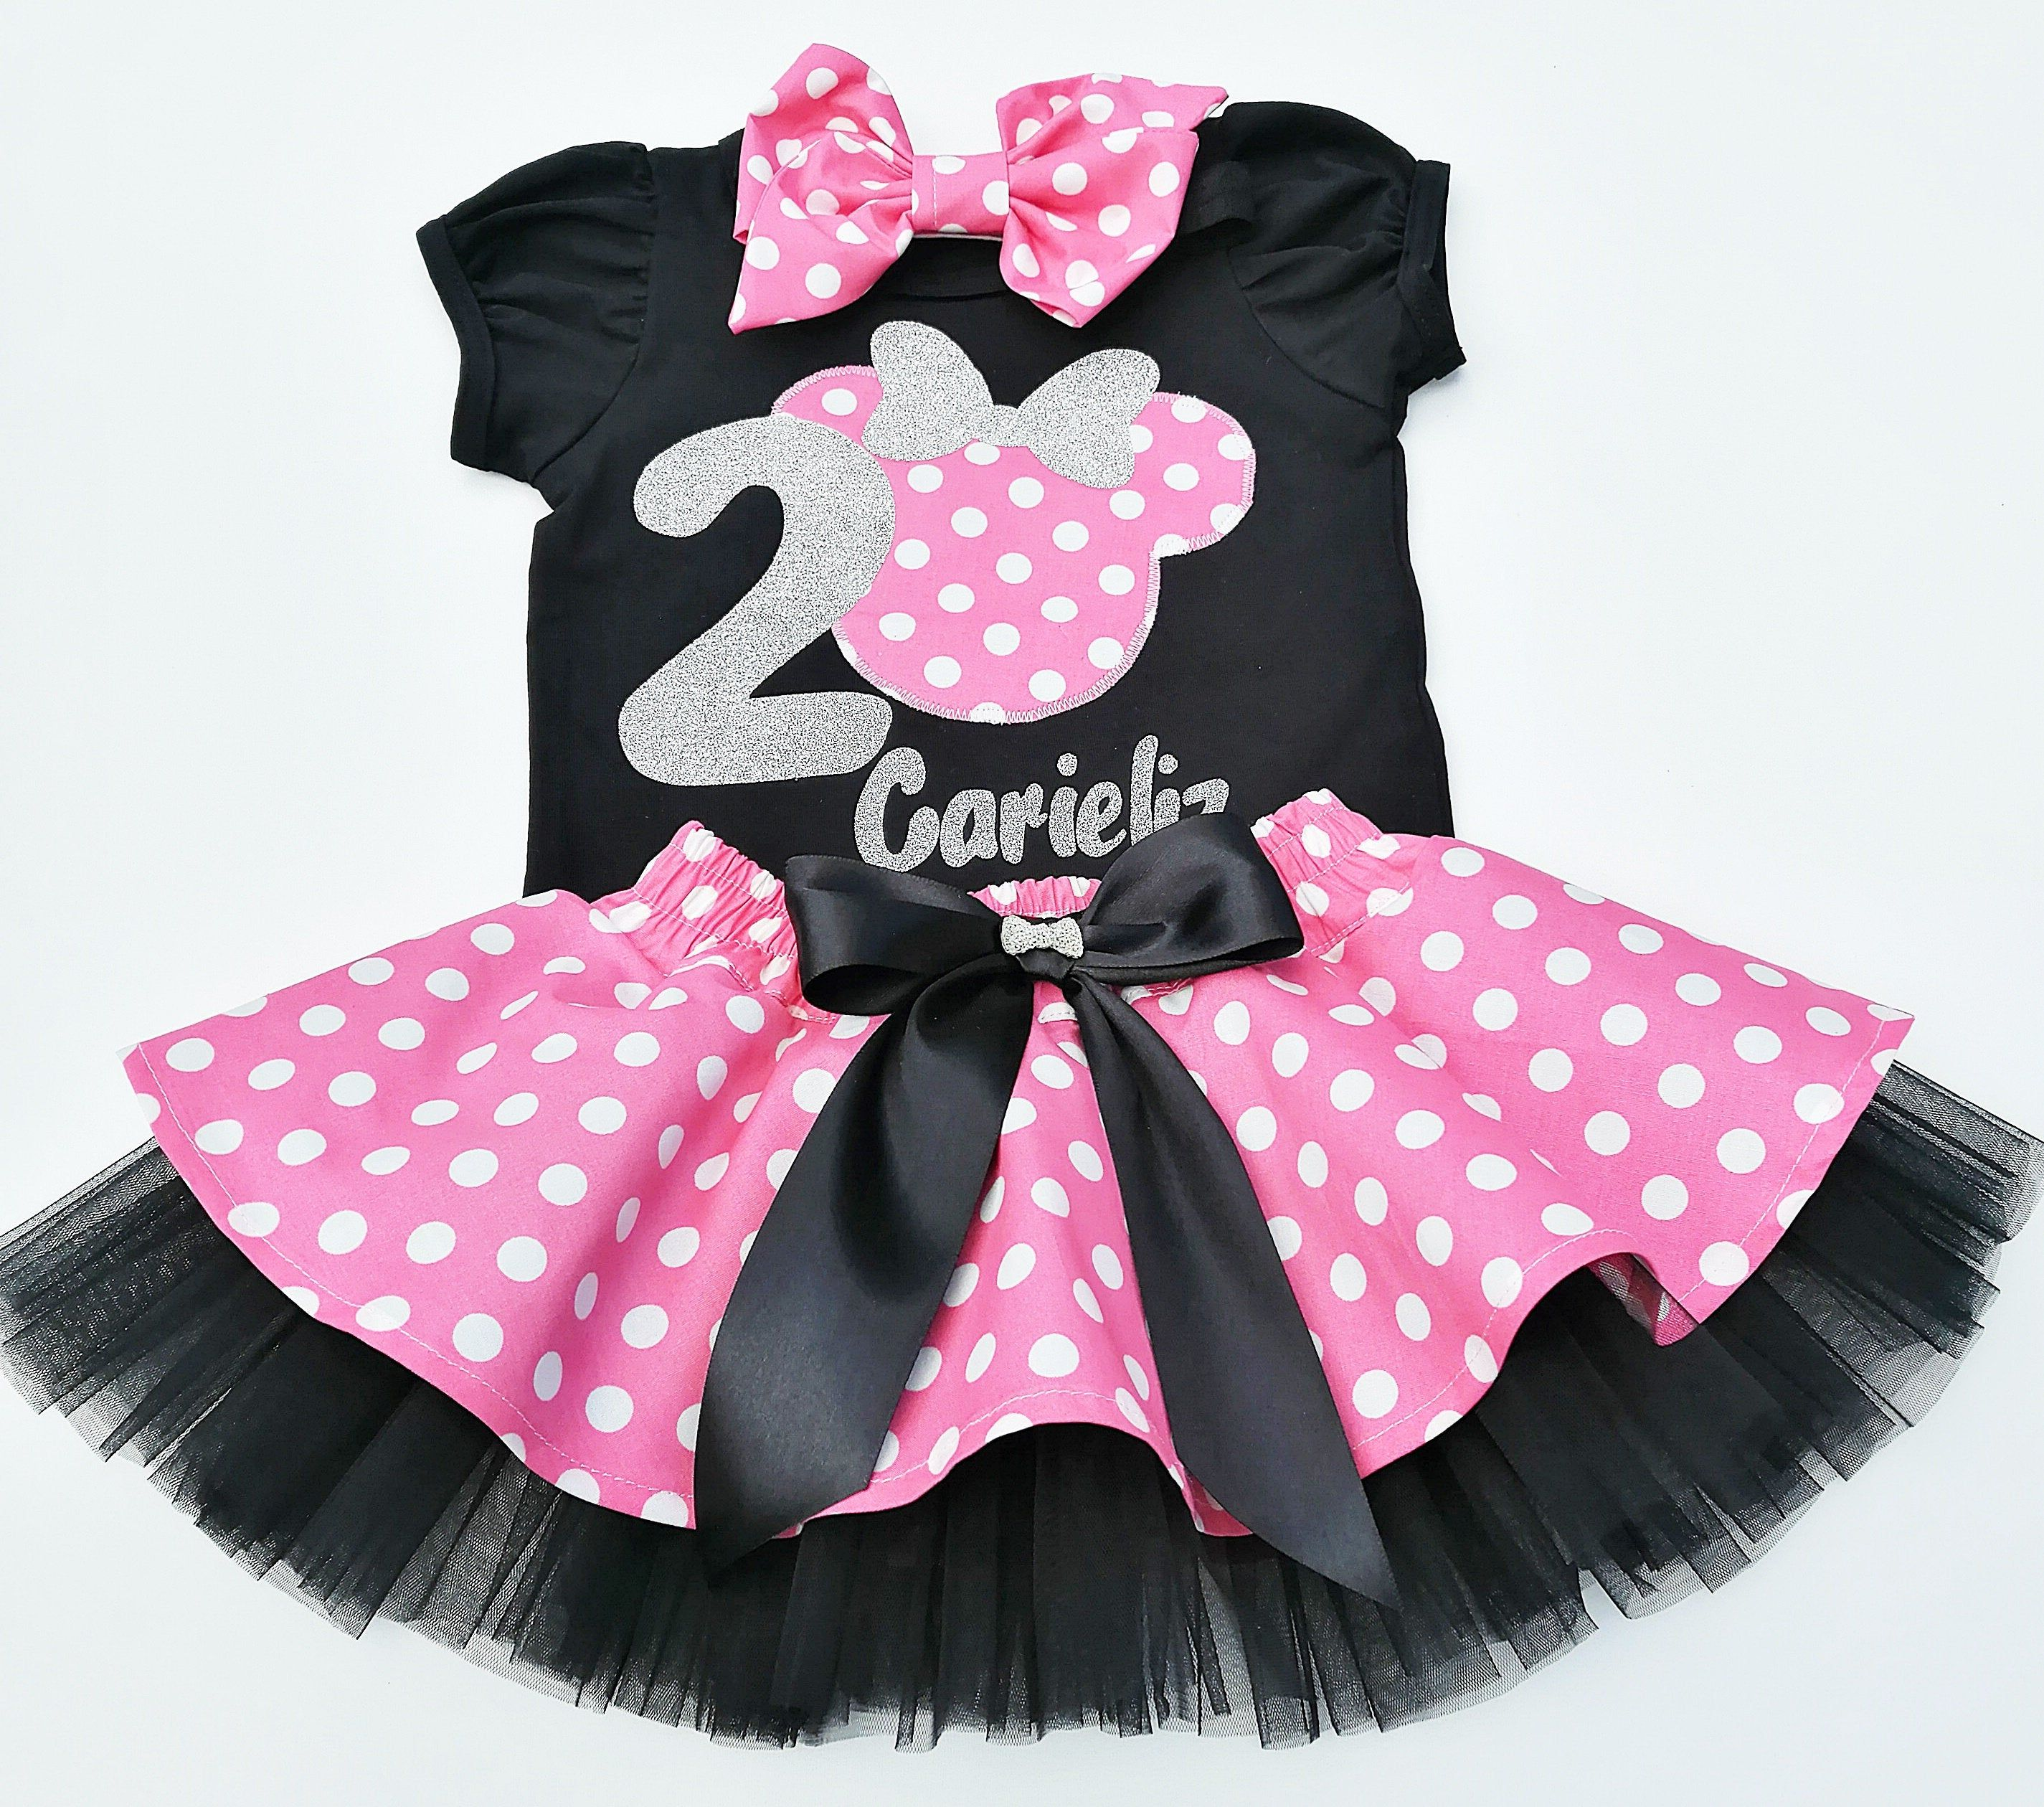 Pin On Kids Birthday Outfits